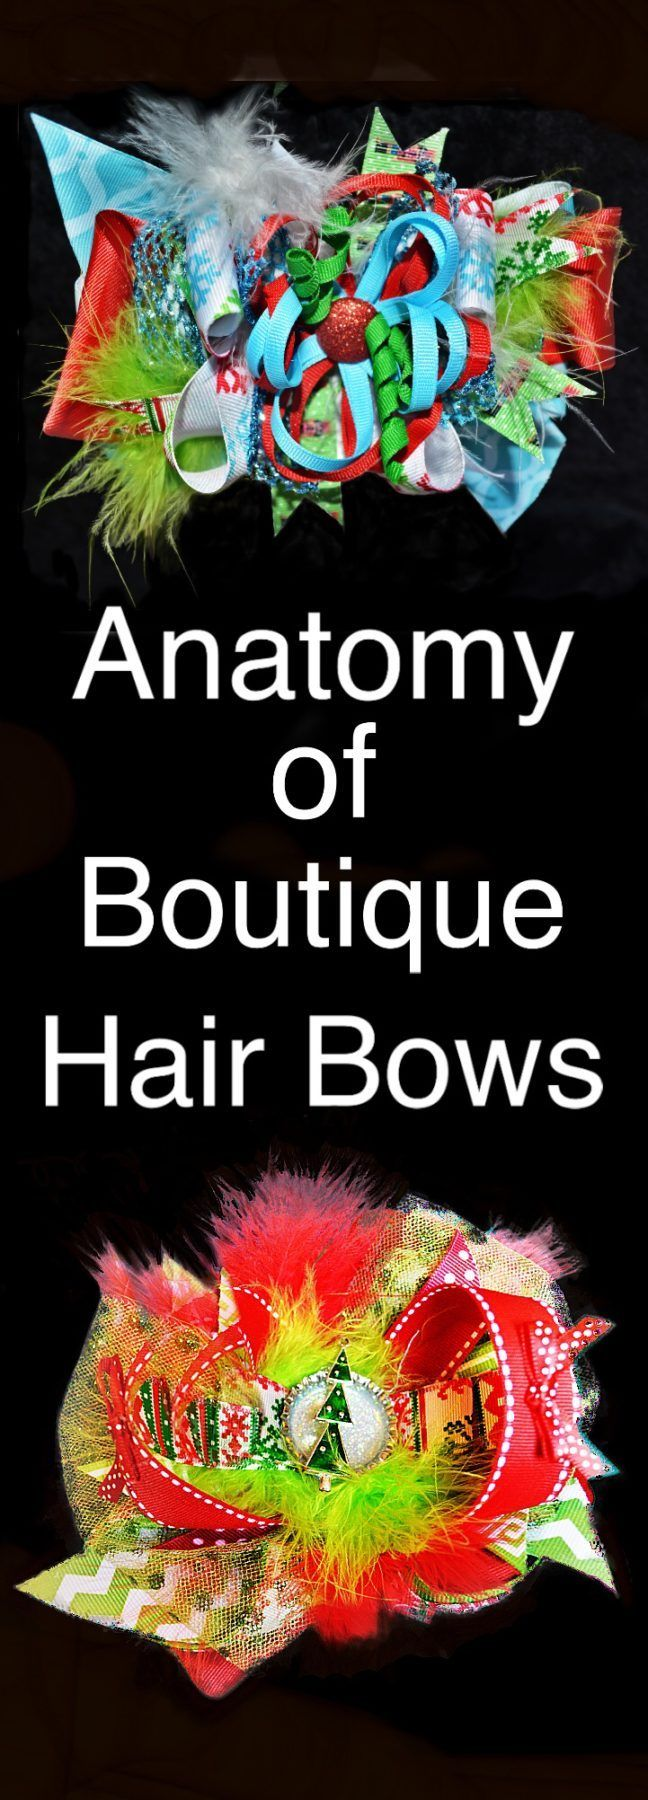 Anatomy of Boutique Hair Bows